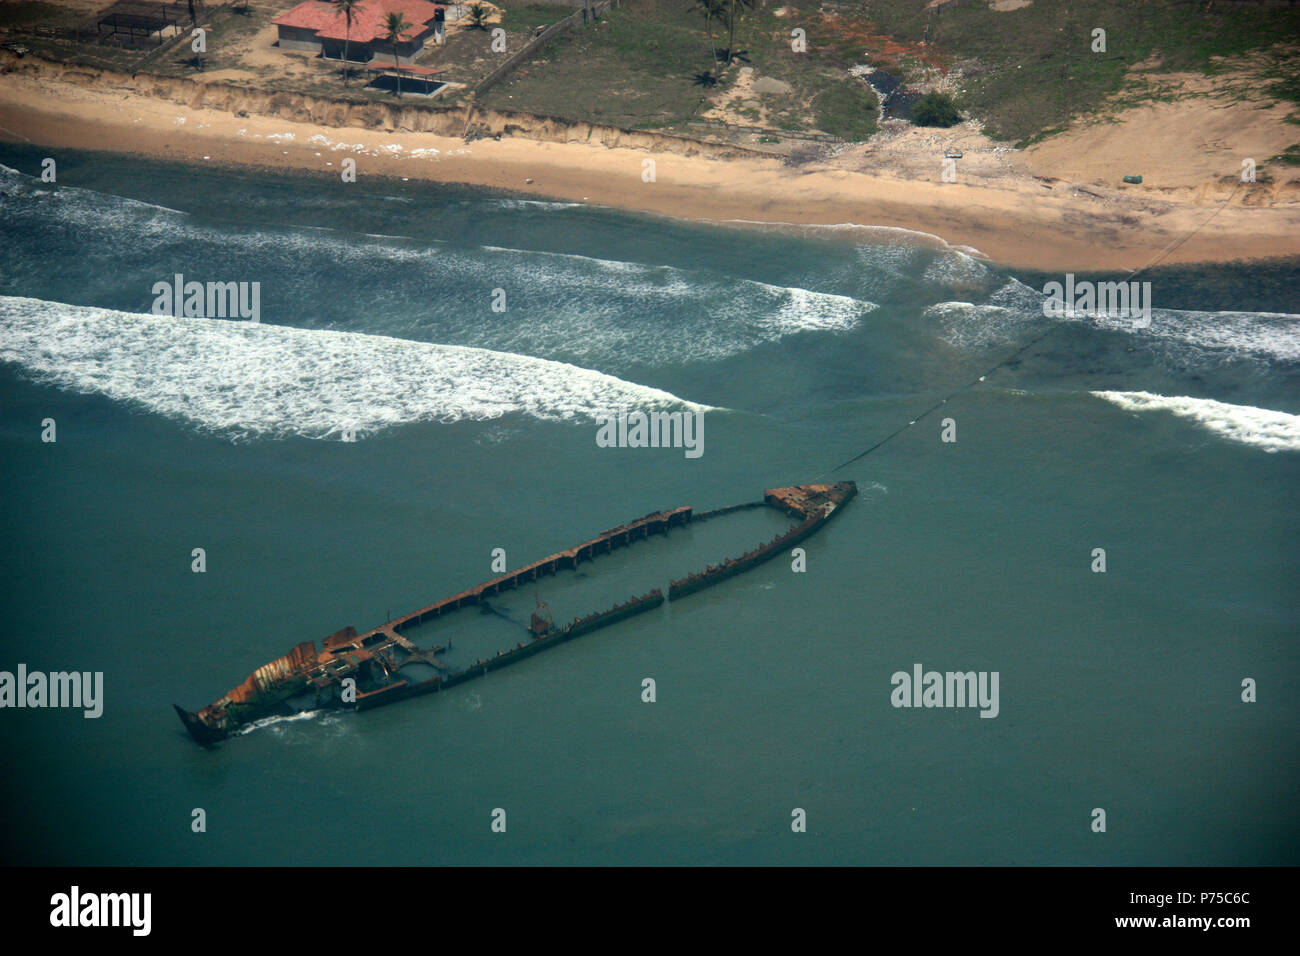 Aerial View of a rusty Ship Wreckage off the Shore of Ghana - Stock Image